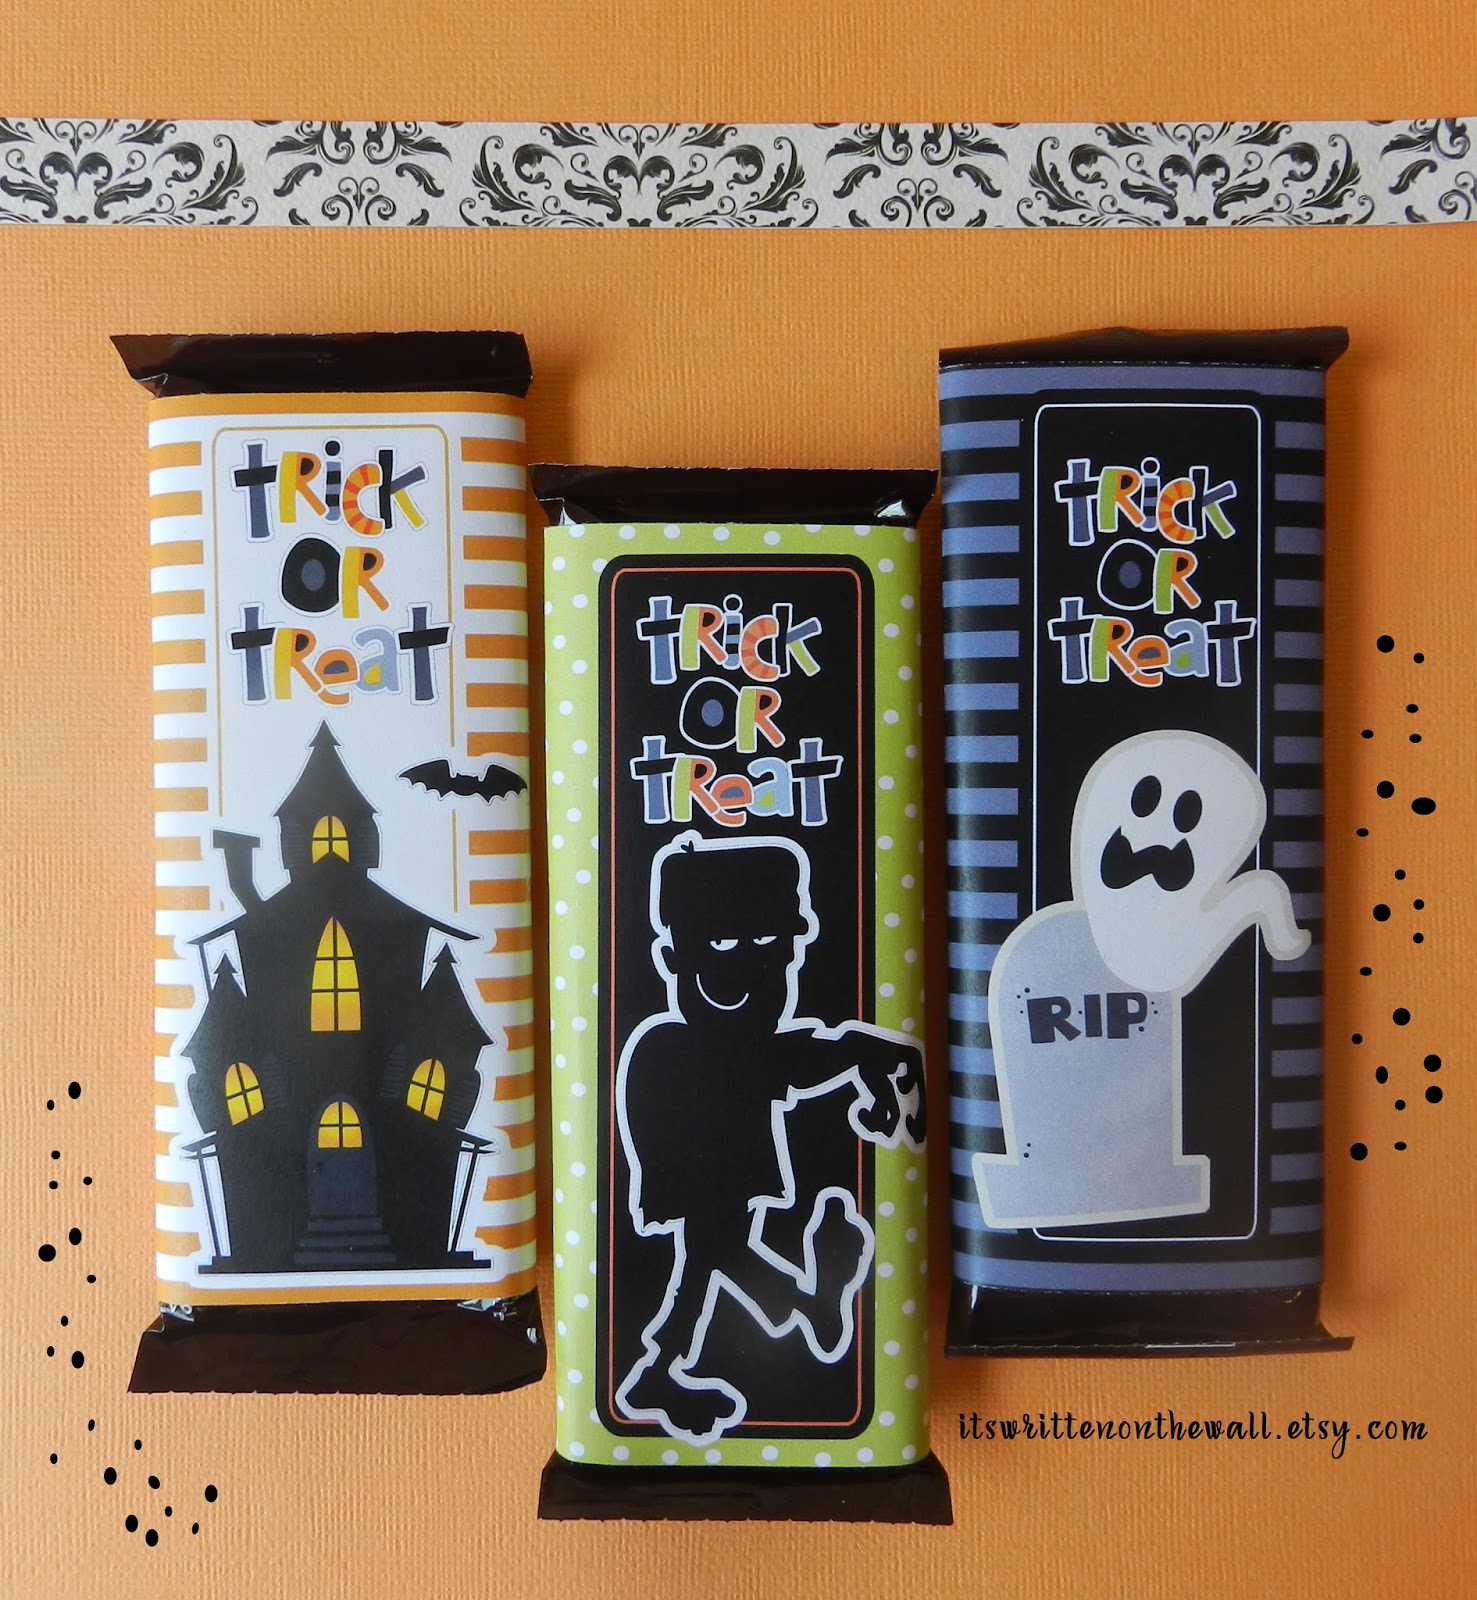 It's Written on the Wall: Wrap your Halloween Candy with FUN-6 ...